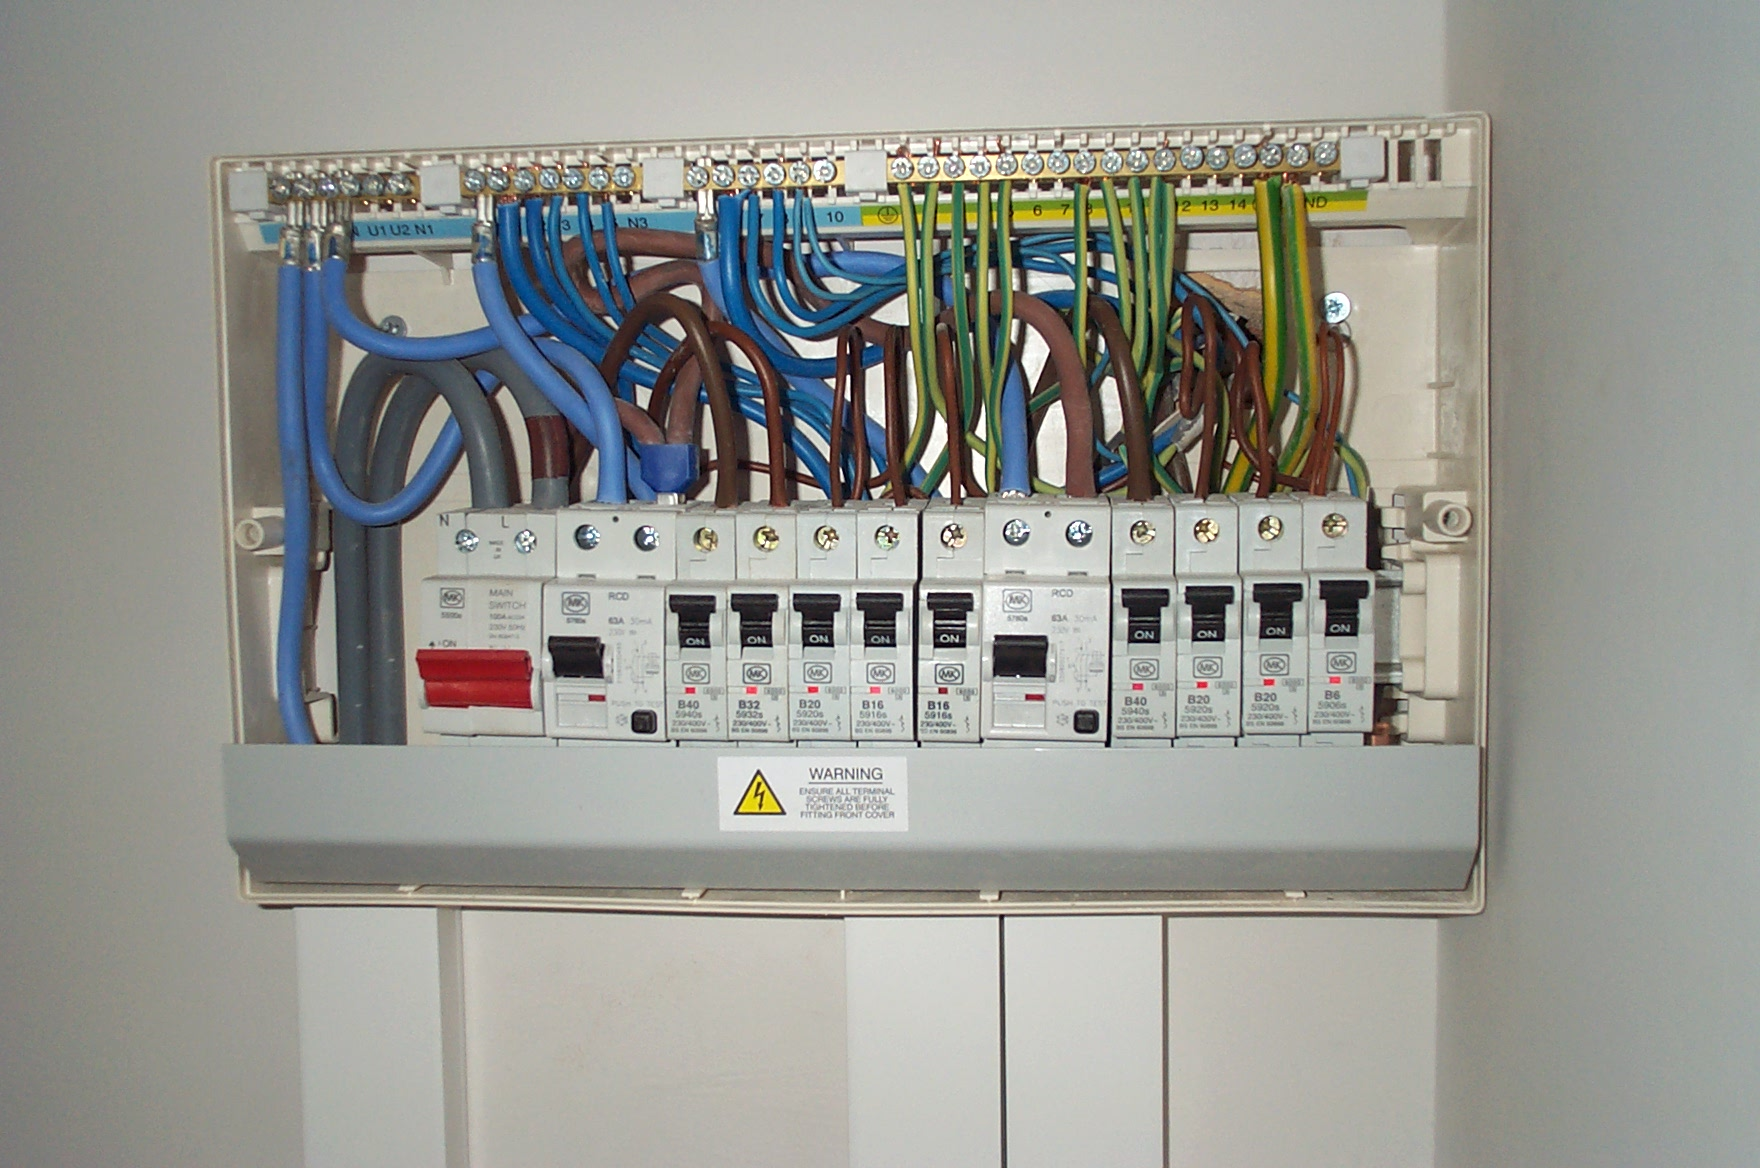 consumer units milton keynes electrician mjs electricalmilton keynes electrician mjs electrical old fuse box fuses old fuse boxes in homes